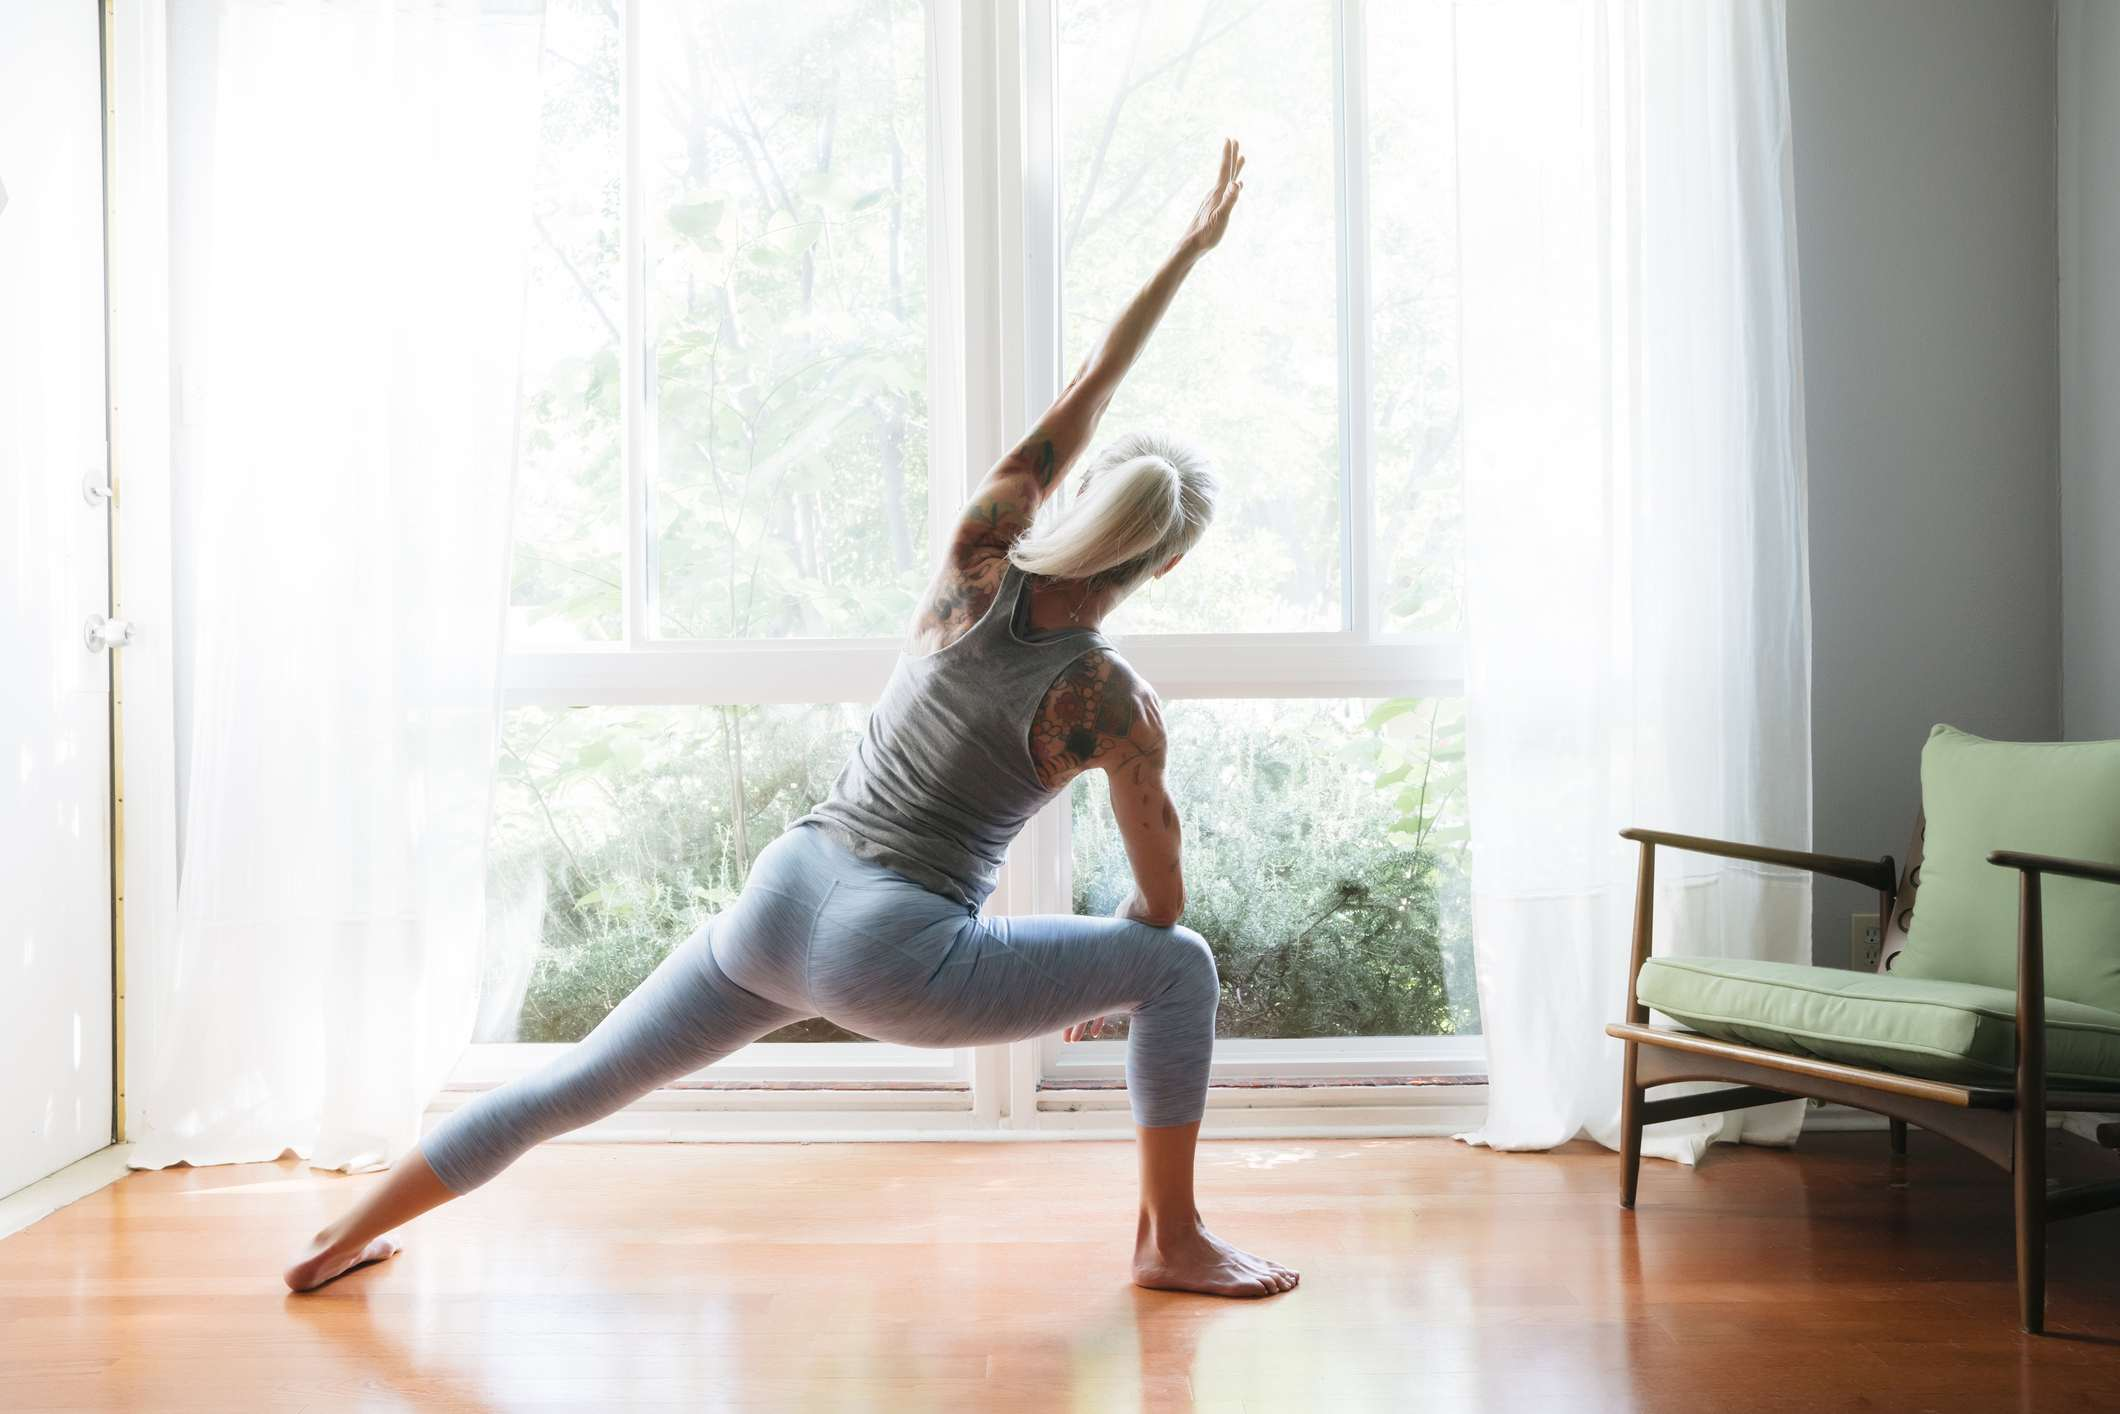 Person doing yoga in living room